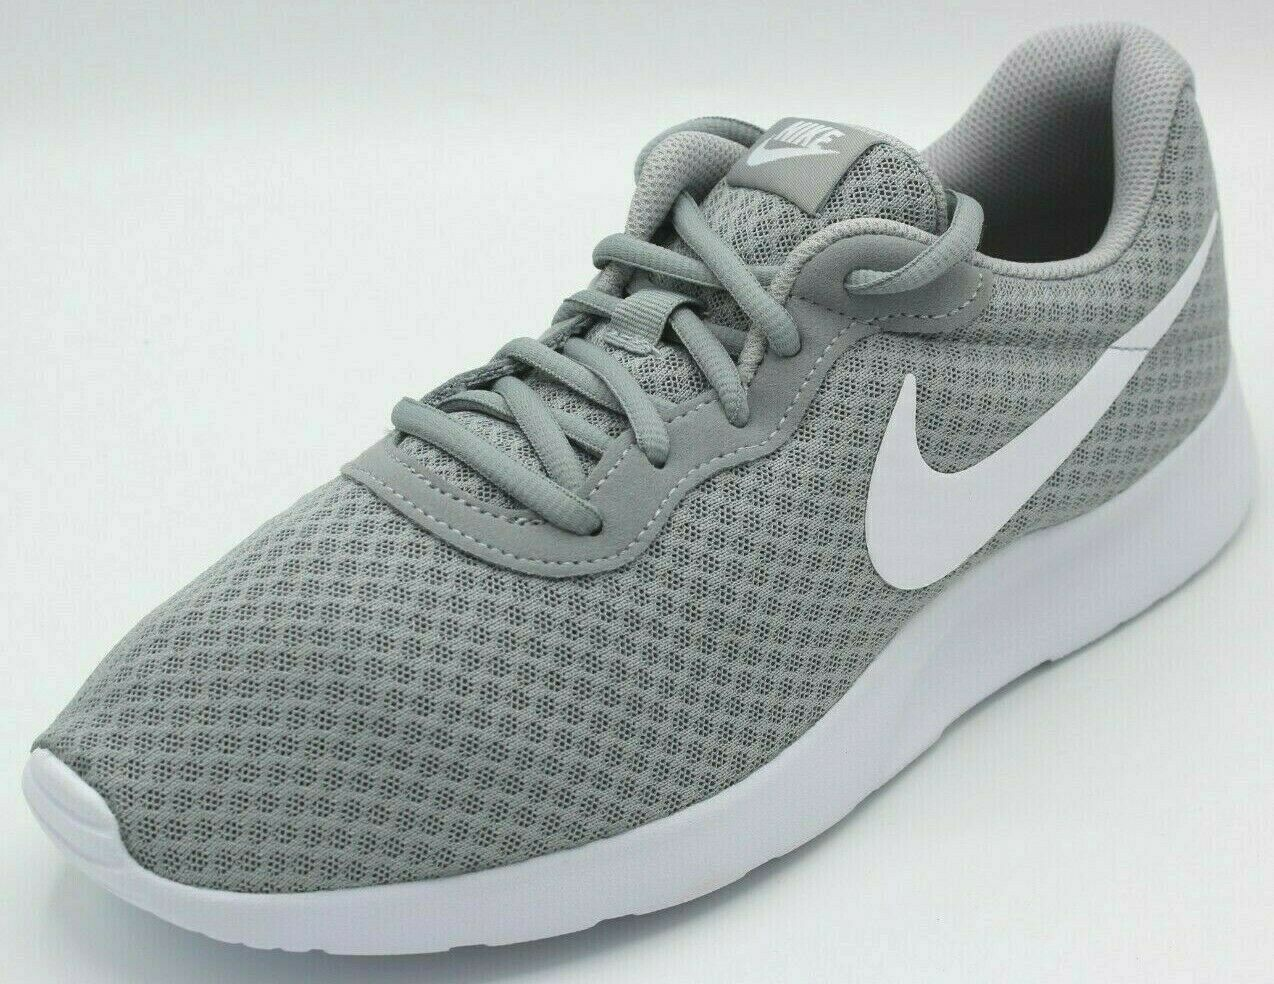 Nike Mens Tanjun Wolf Grey White 812654 010 New Size 9 and 9.5